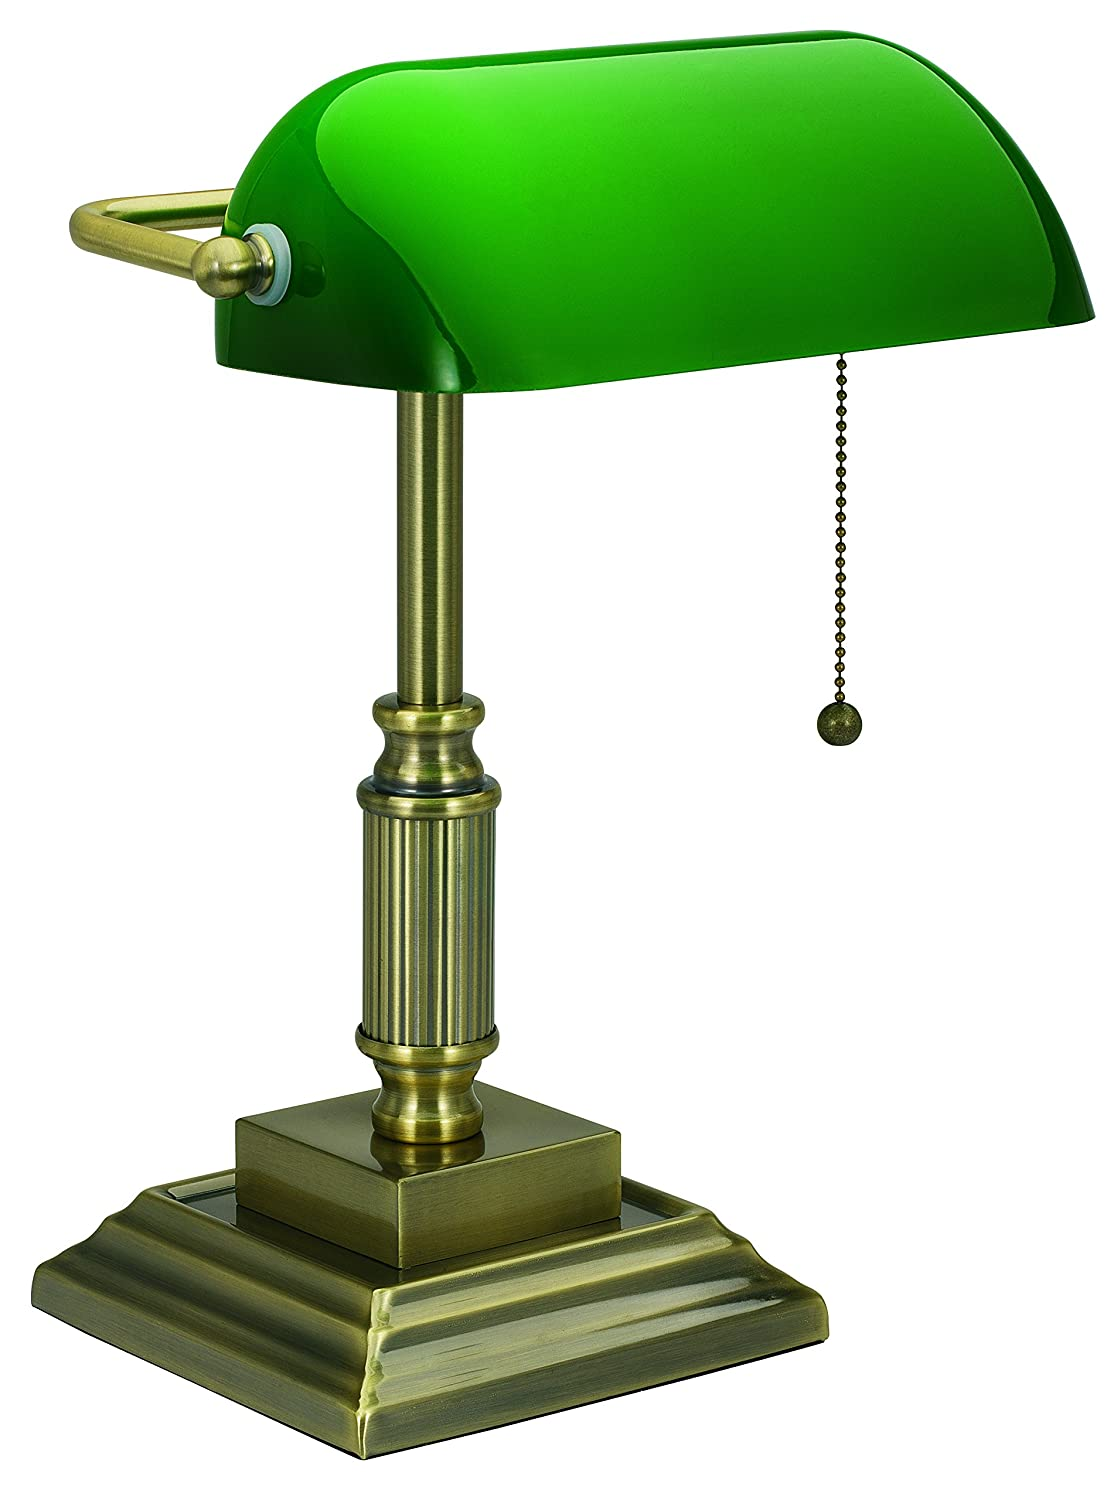 V-LIGHT Traditional Style CFL Banker's Desk Lamp with Green Glass Shade (VS688029AB)